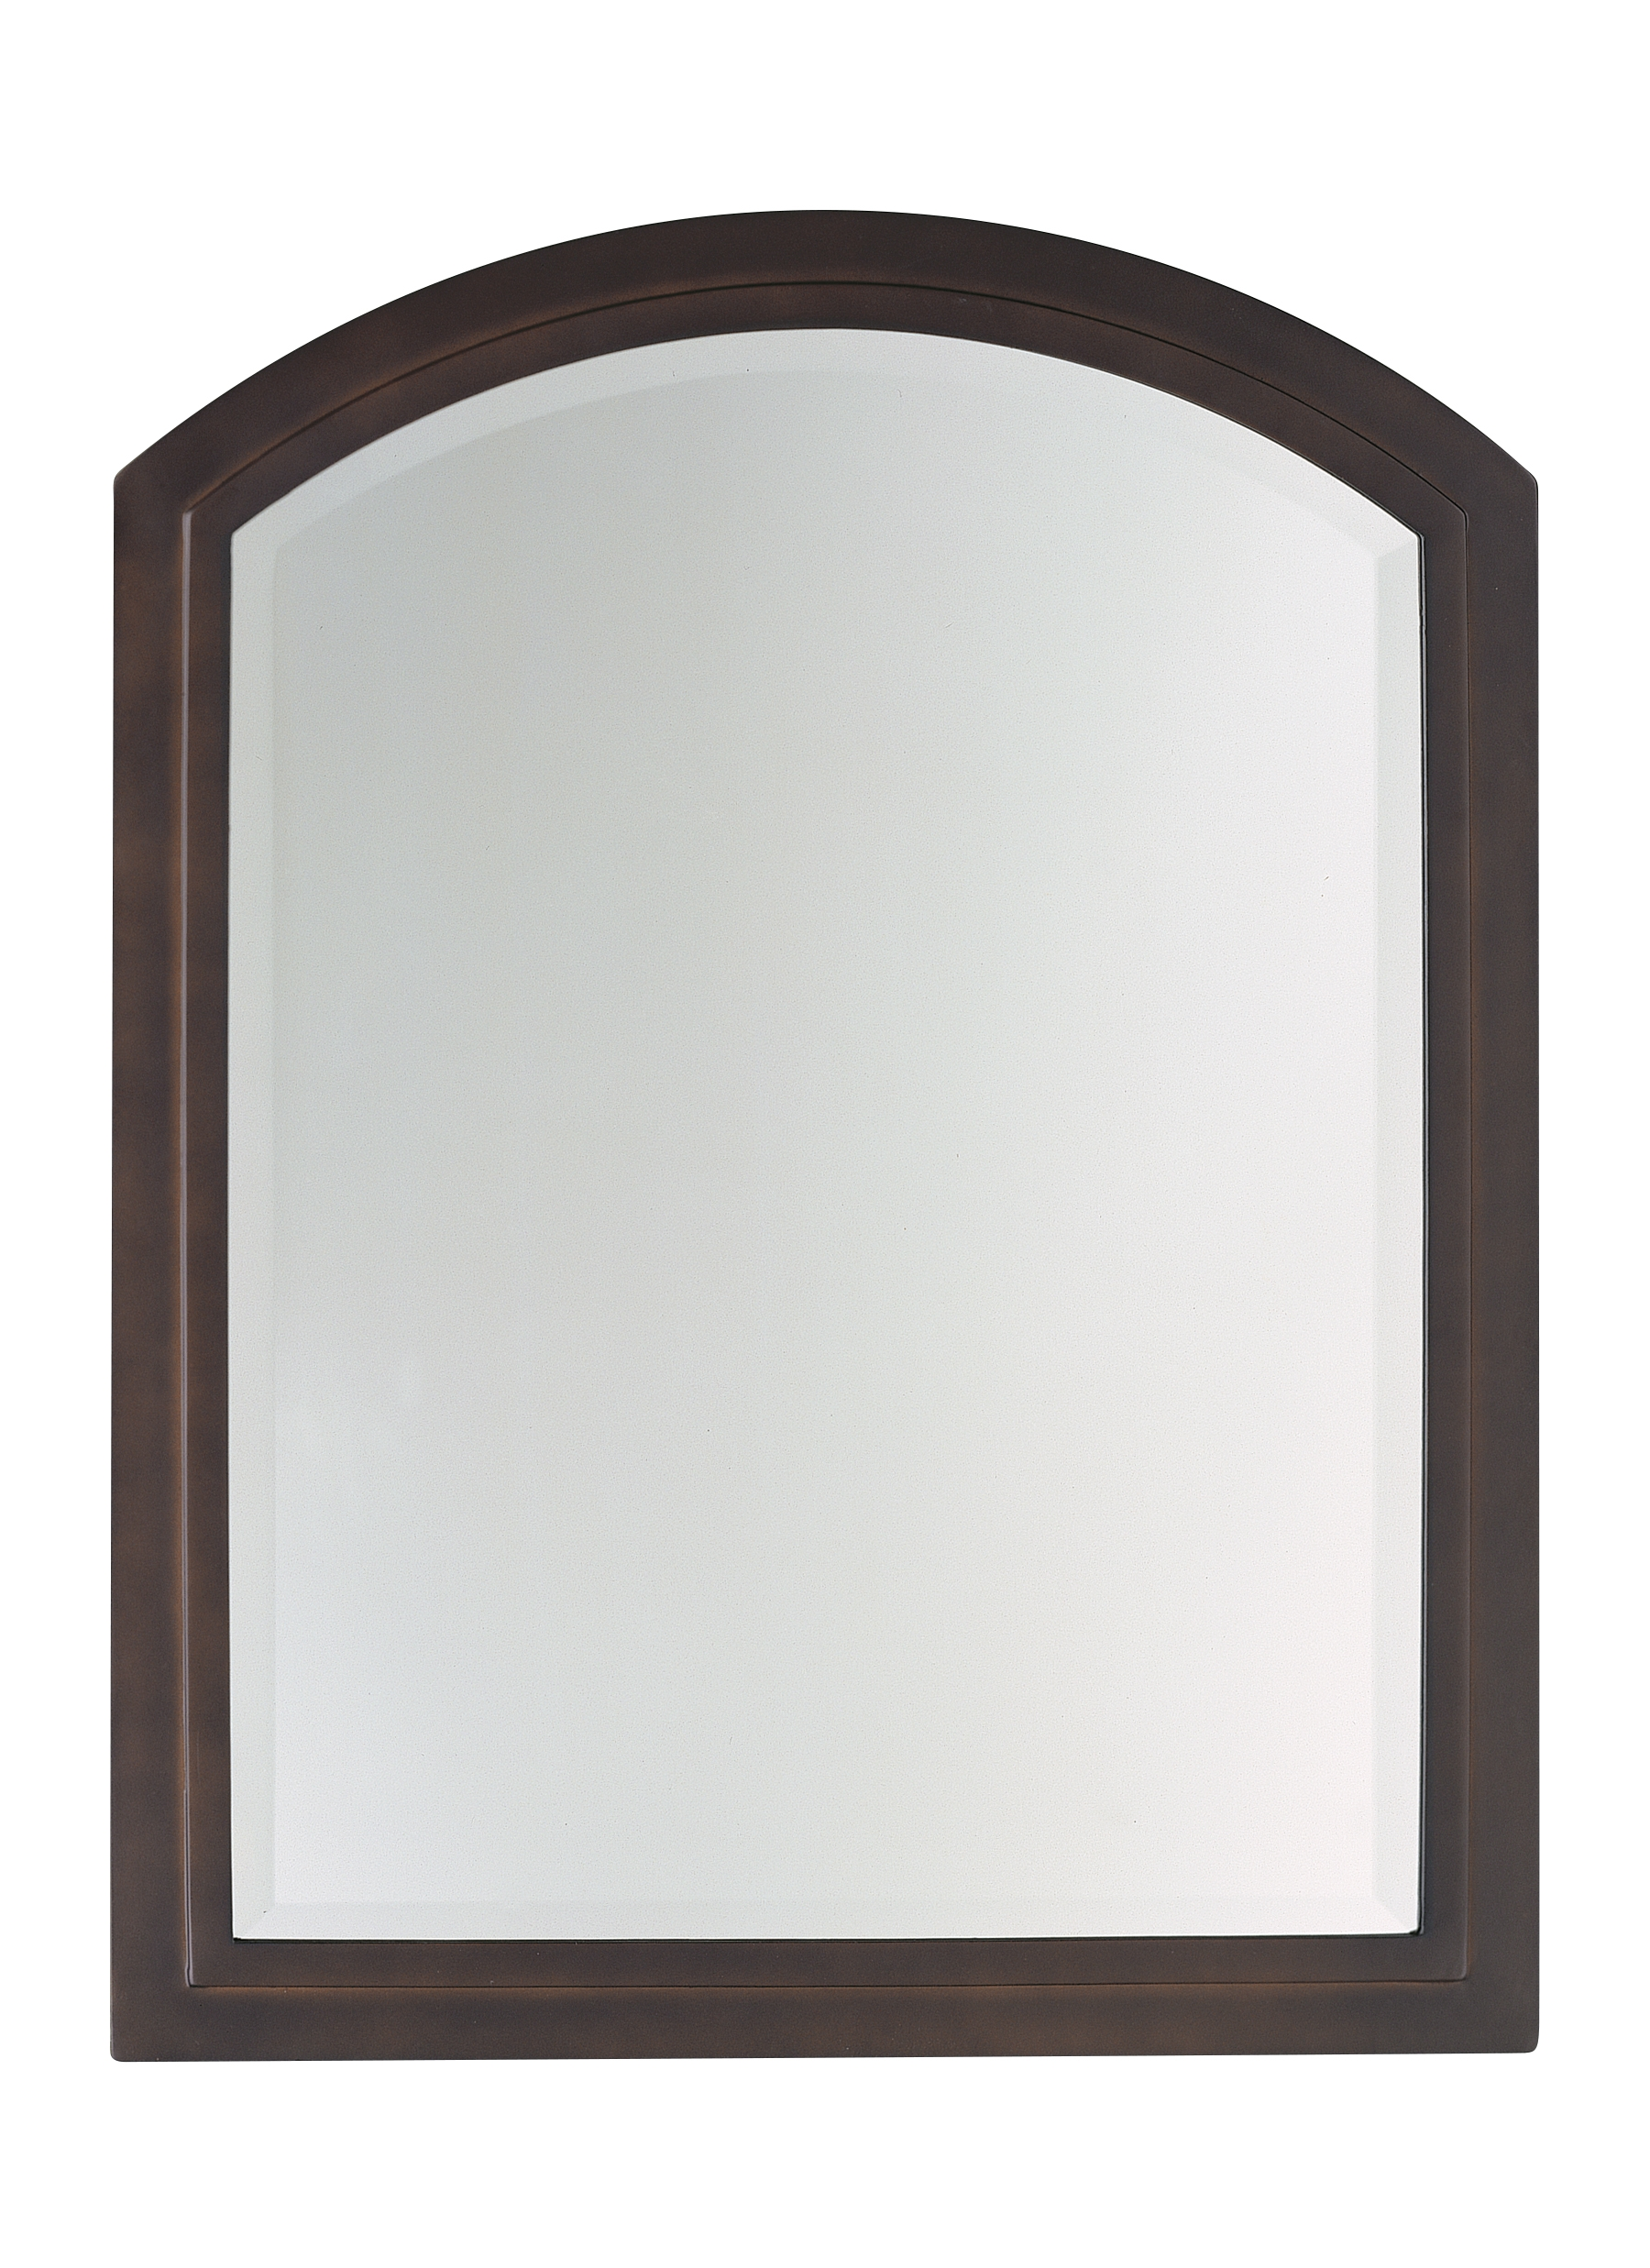 Oil Rubbed Bronze Wall Mirror Wall Shelves Within Bronze Wall Mirrors (View 15 of 15)